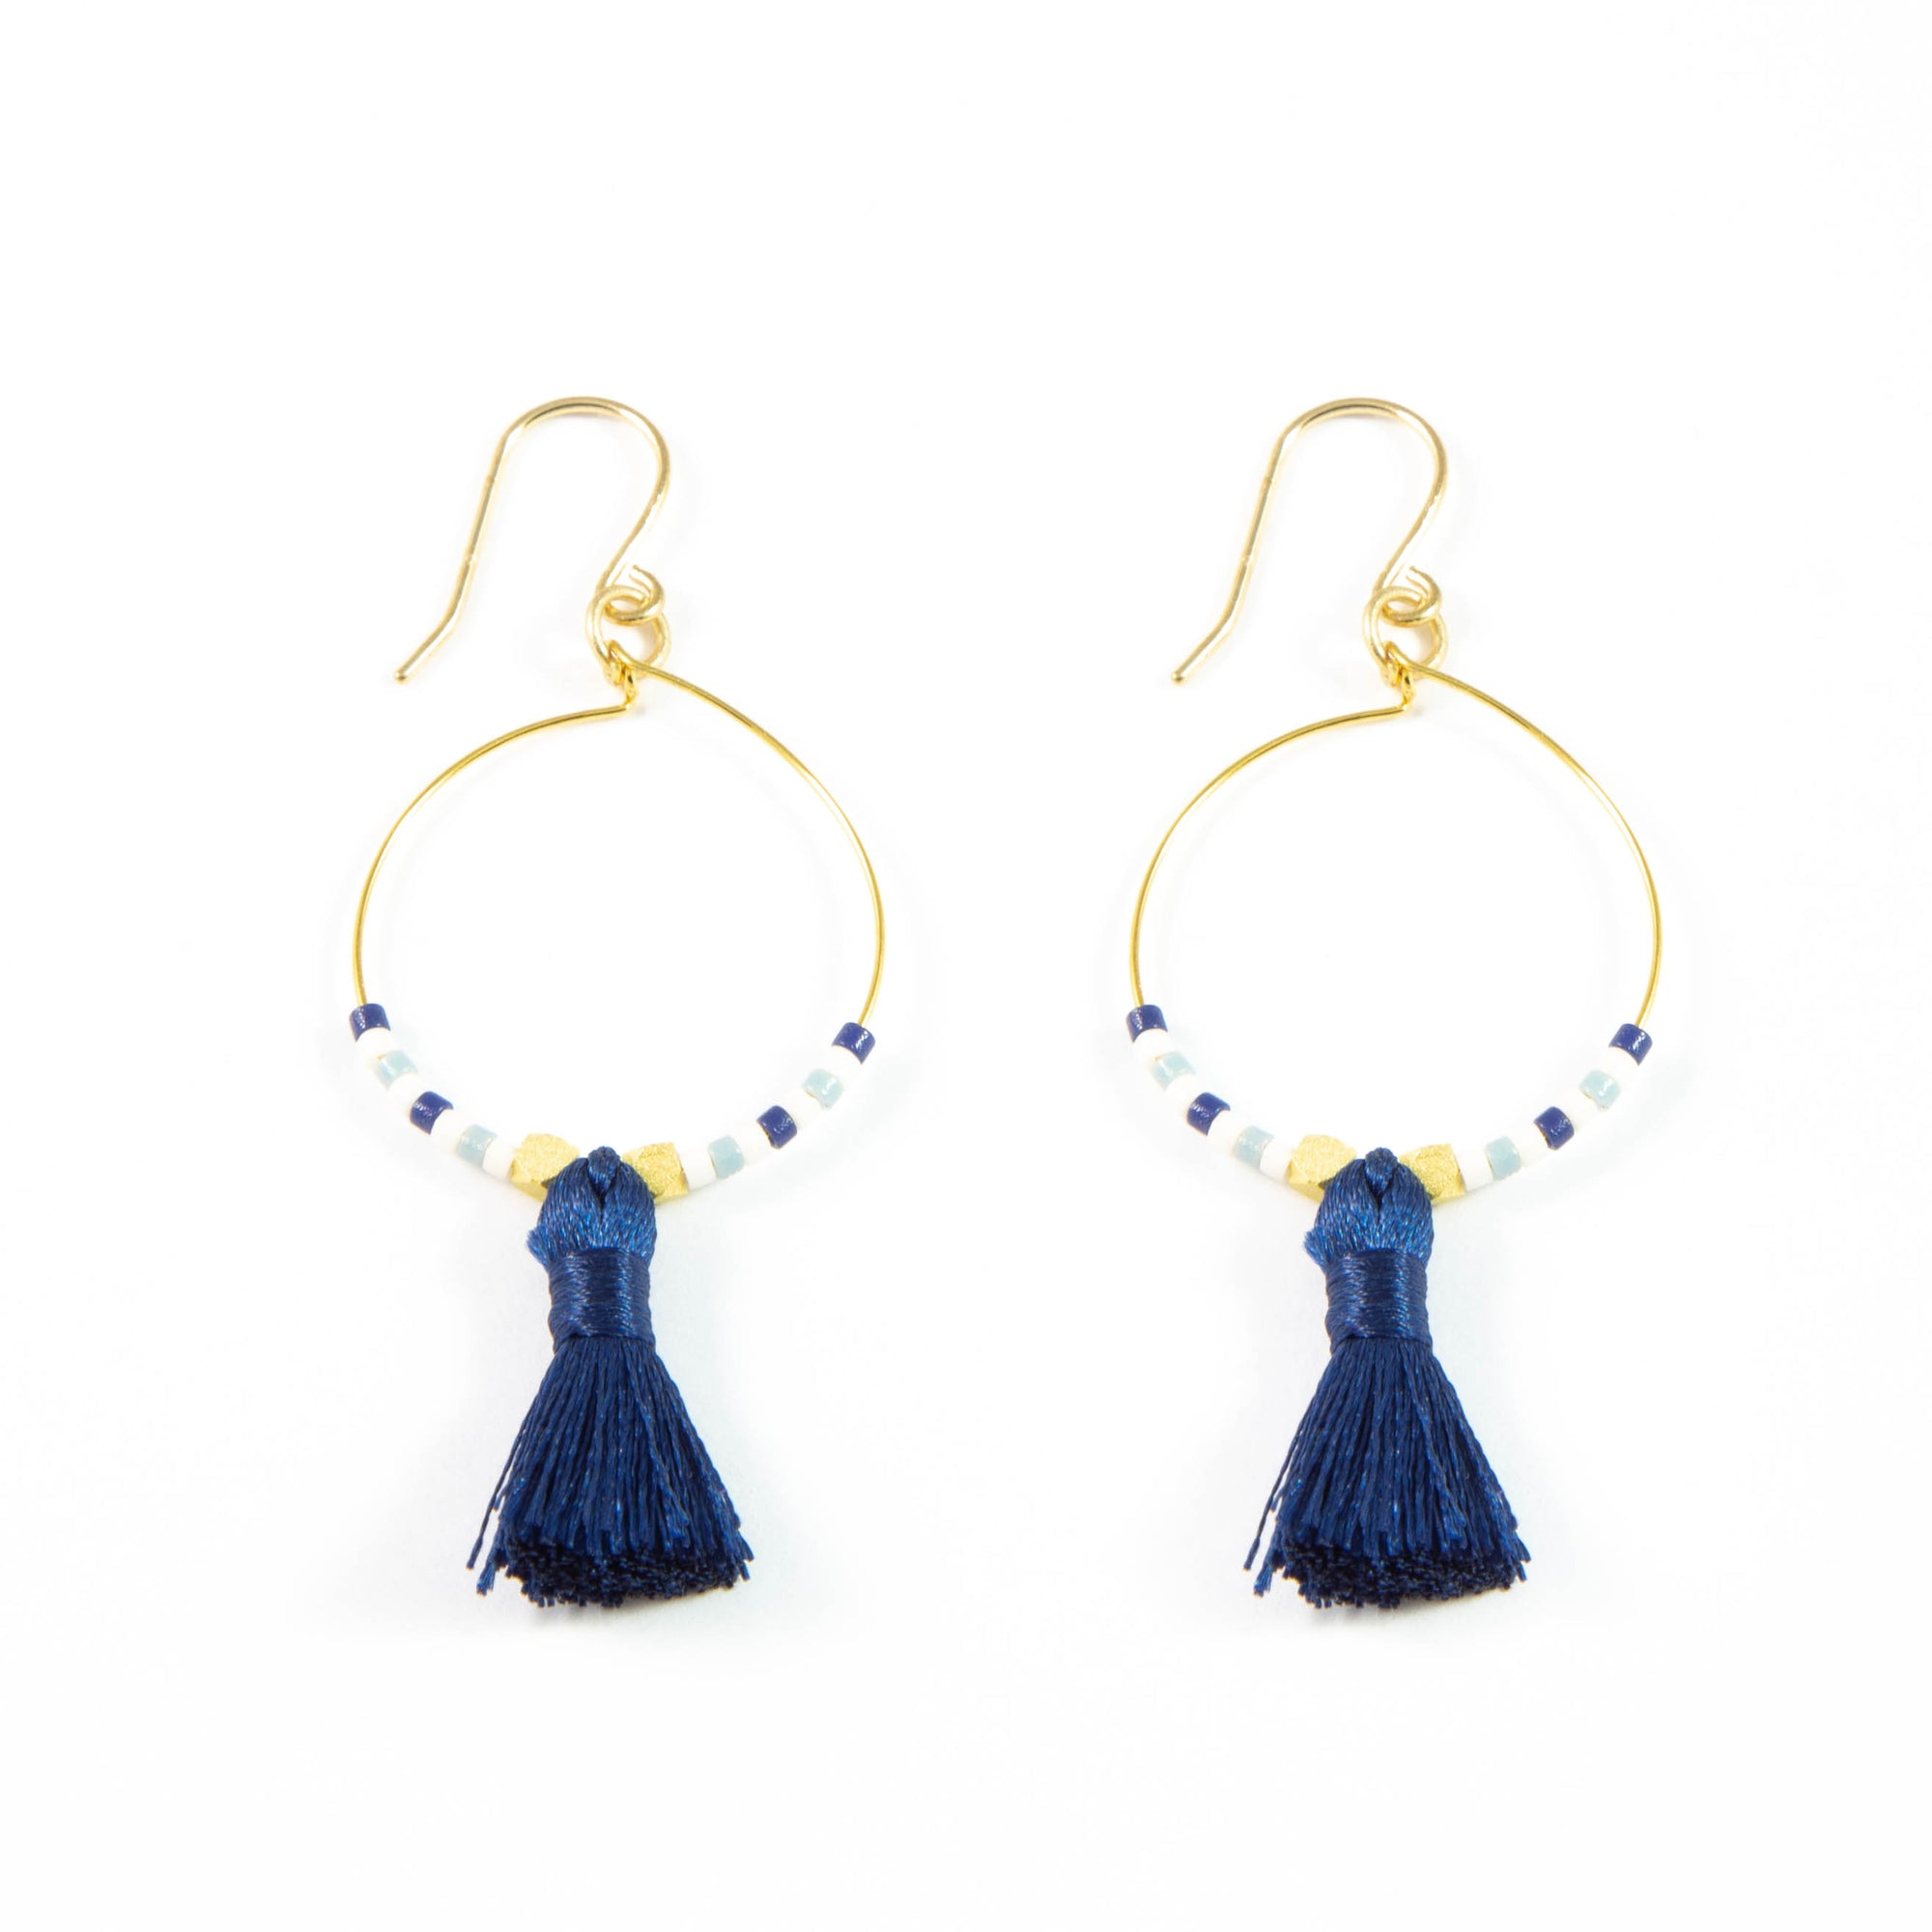 Blues w/ Navy Hoop Tassel Earrings in Gold